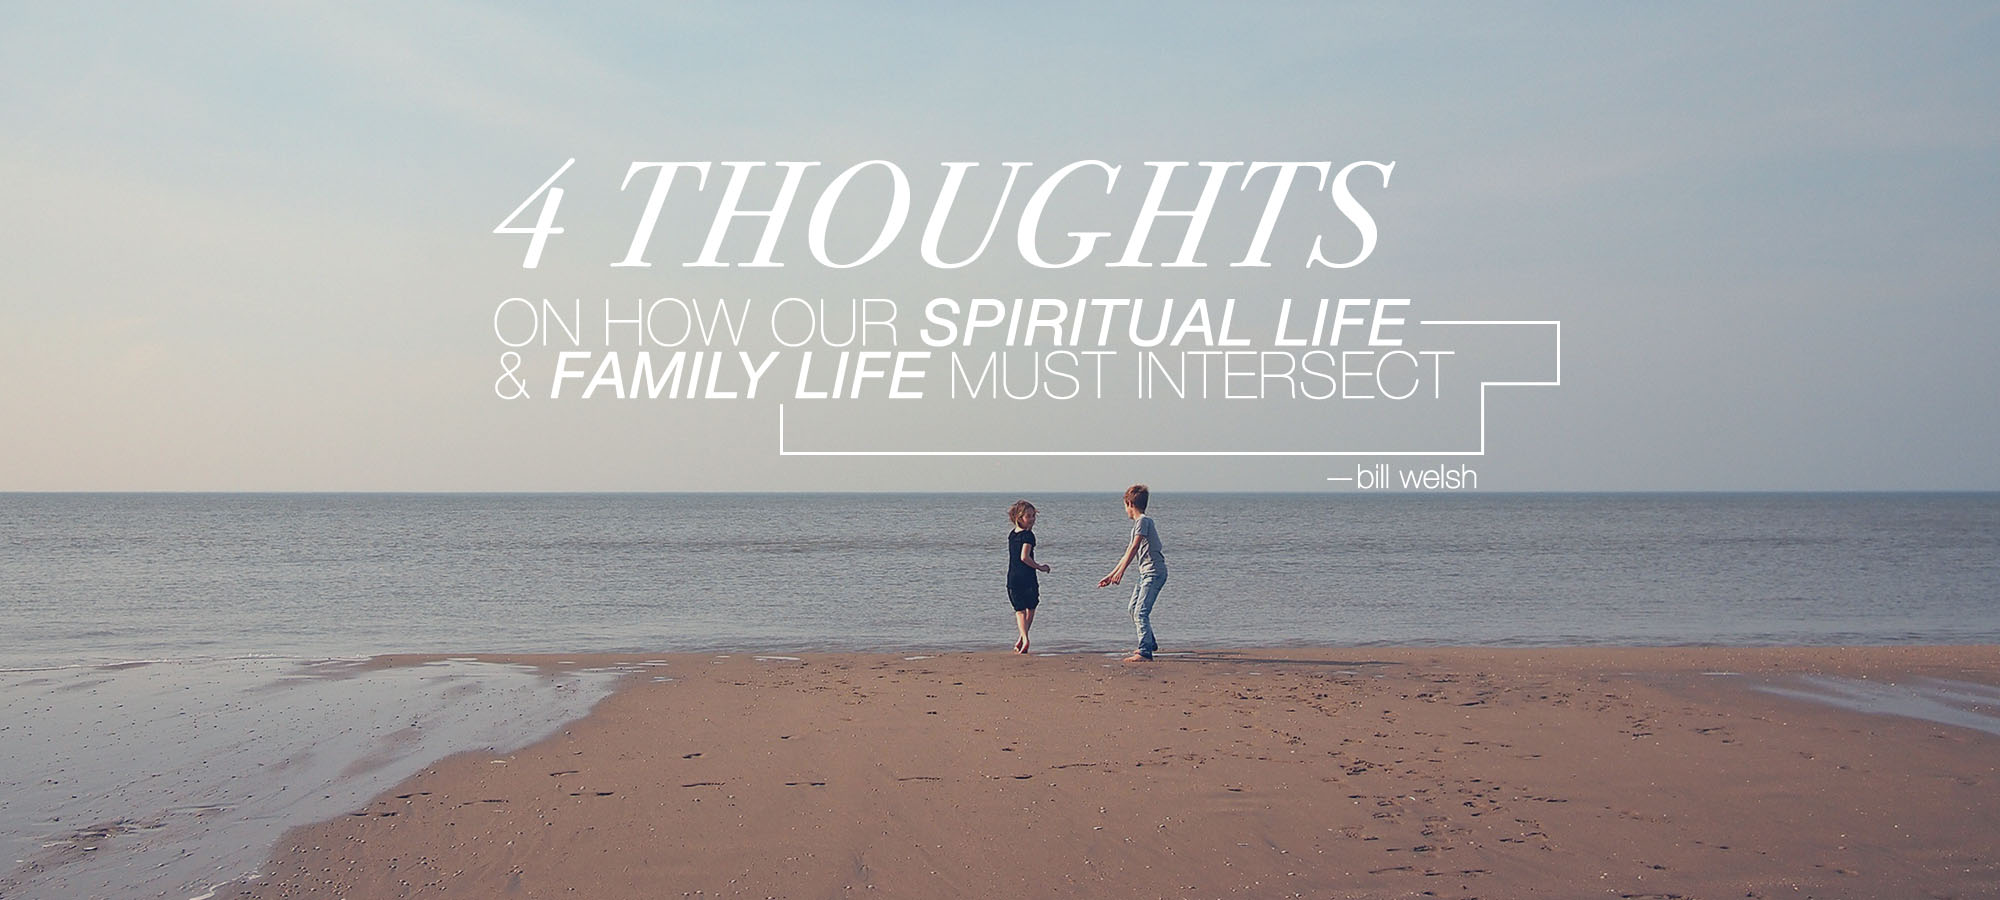 Four Thoughts on How Our Spiritual Life and Family Life Must Intersect